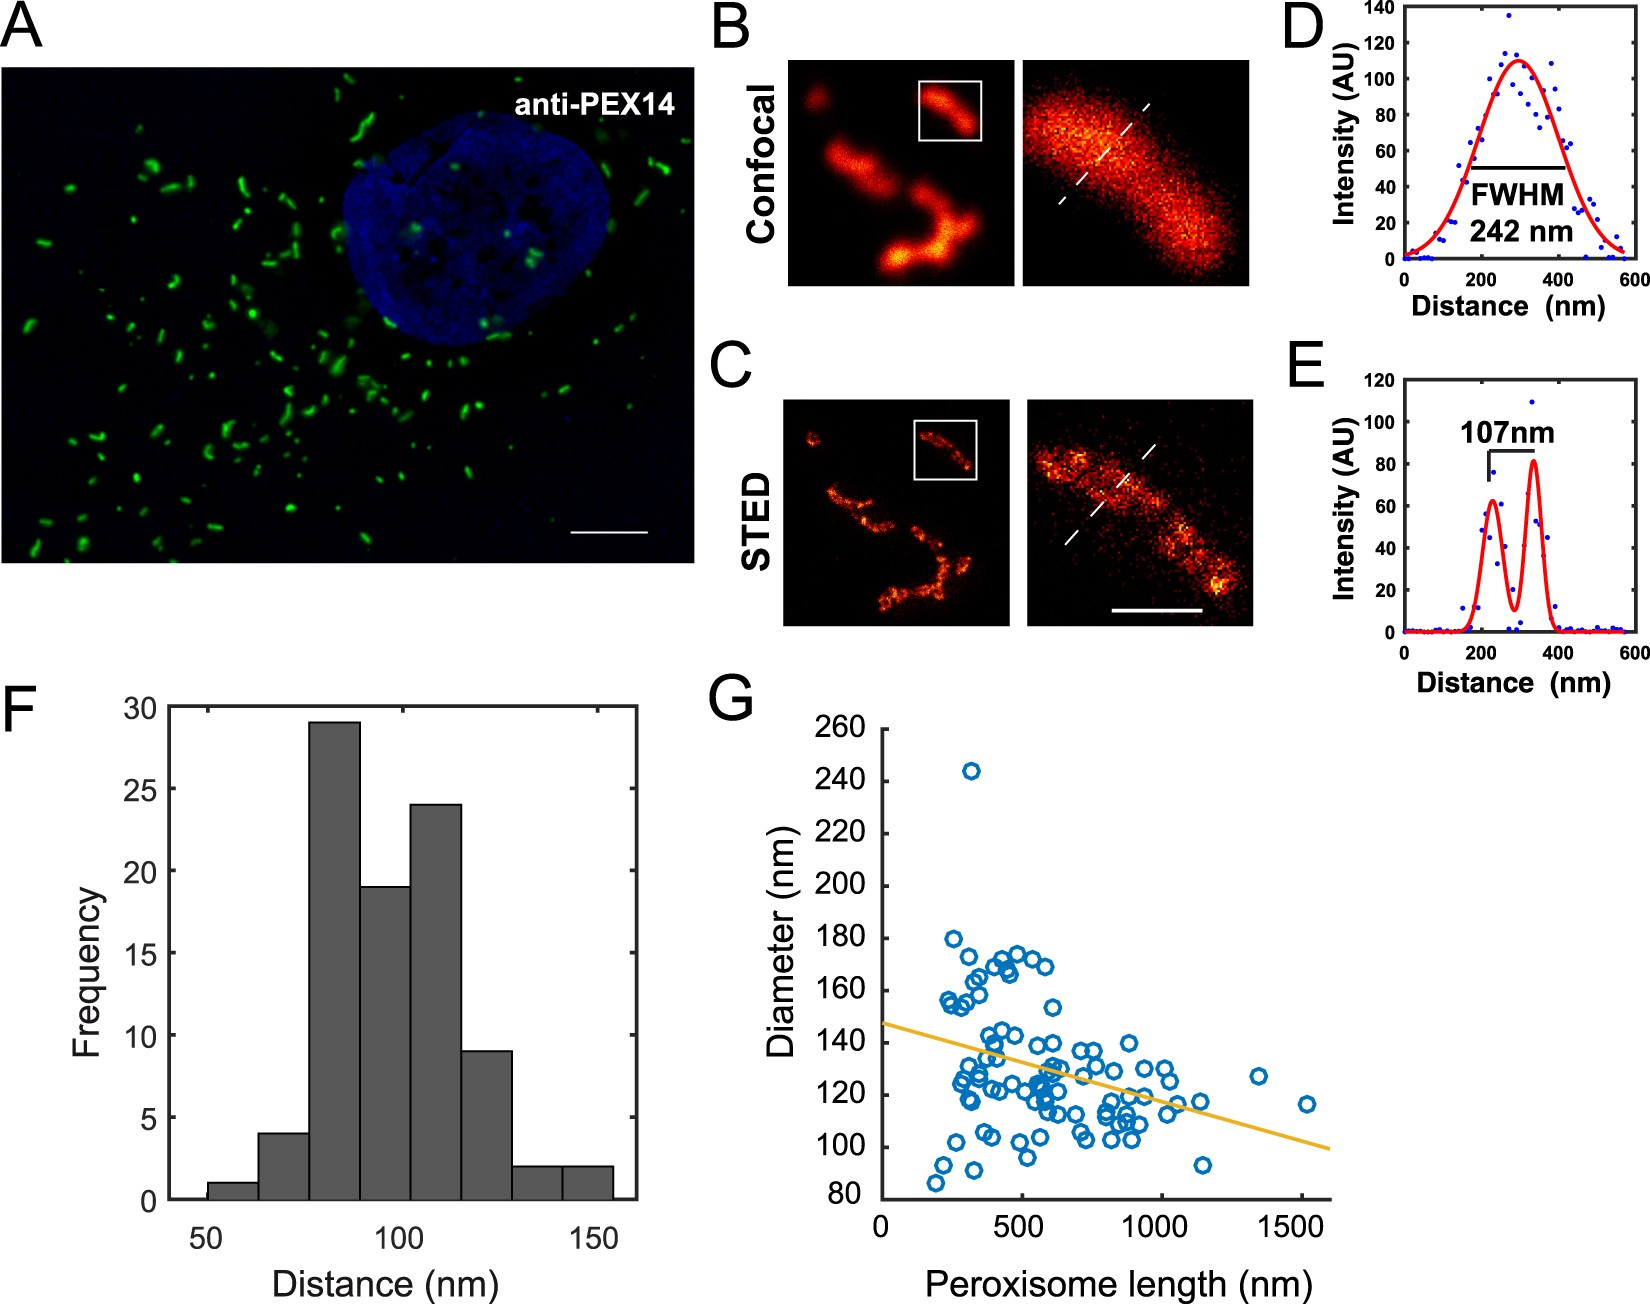 Super Resolution Imaging Reveals The Sub Diffraction Phenotype Of 5 Pen Pc Technology Block Diagram Zellweger Syndrome Ghosts And Wild Type Peroxisomes Scientific Reports